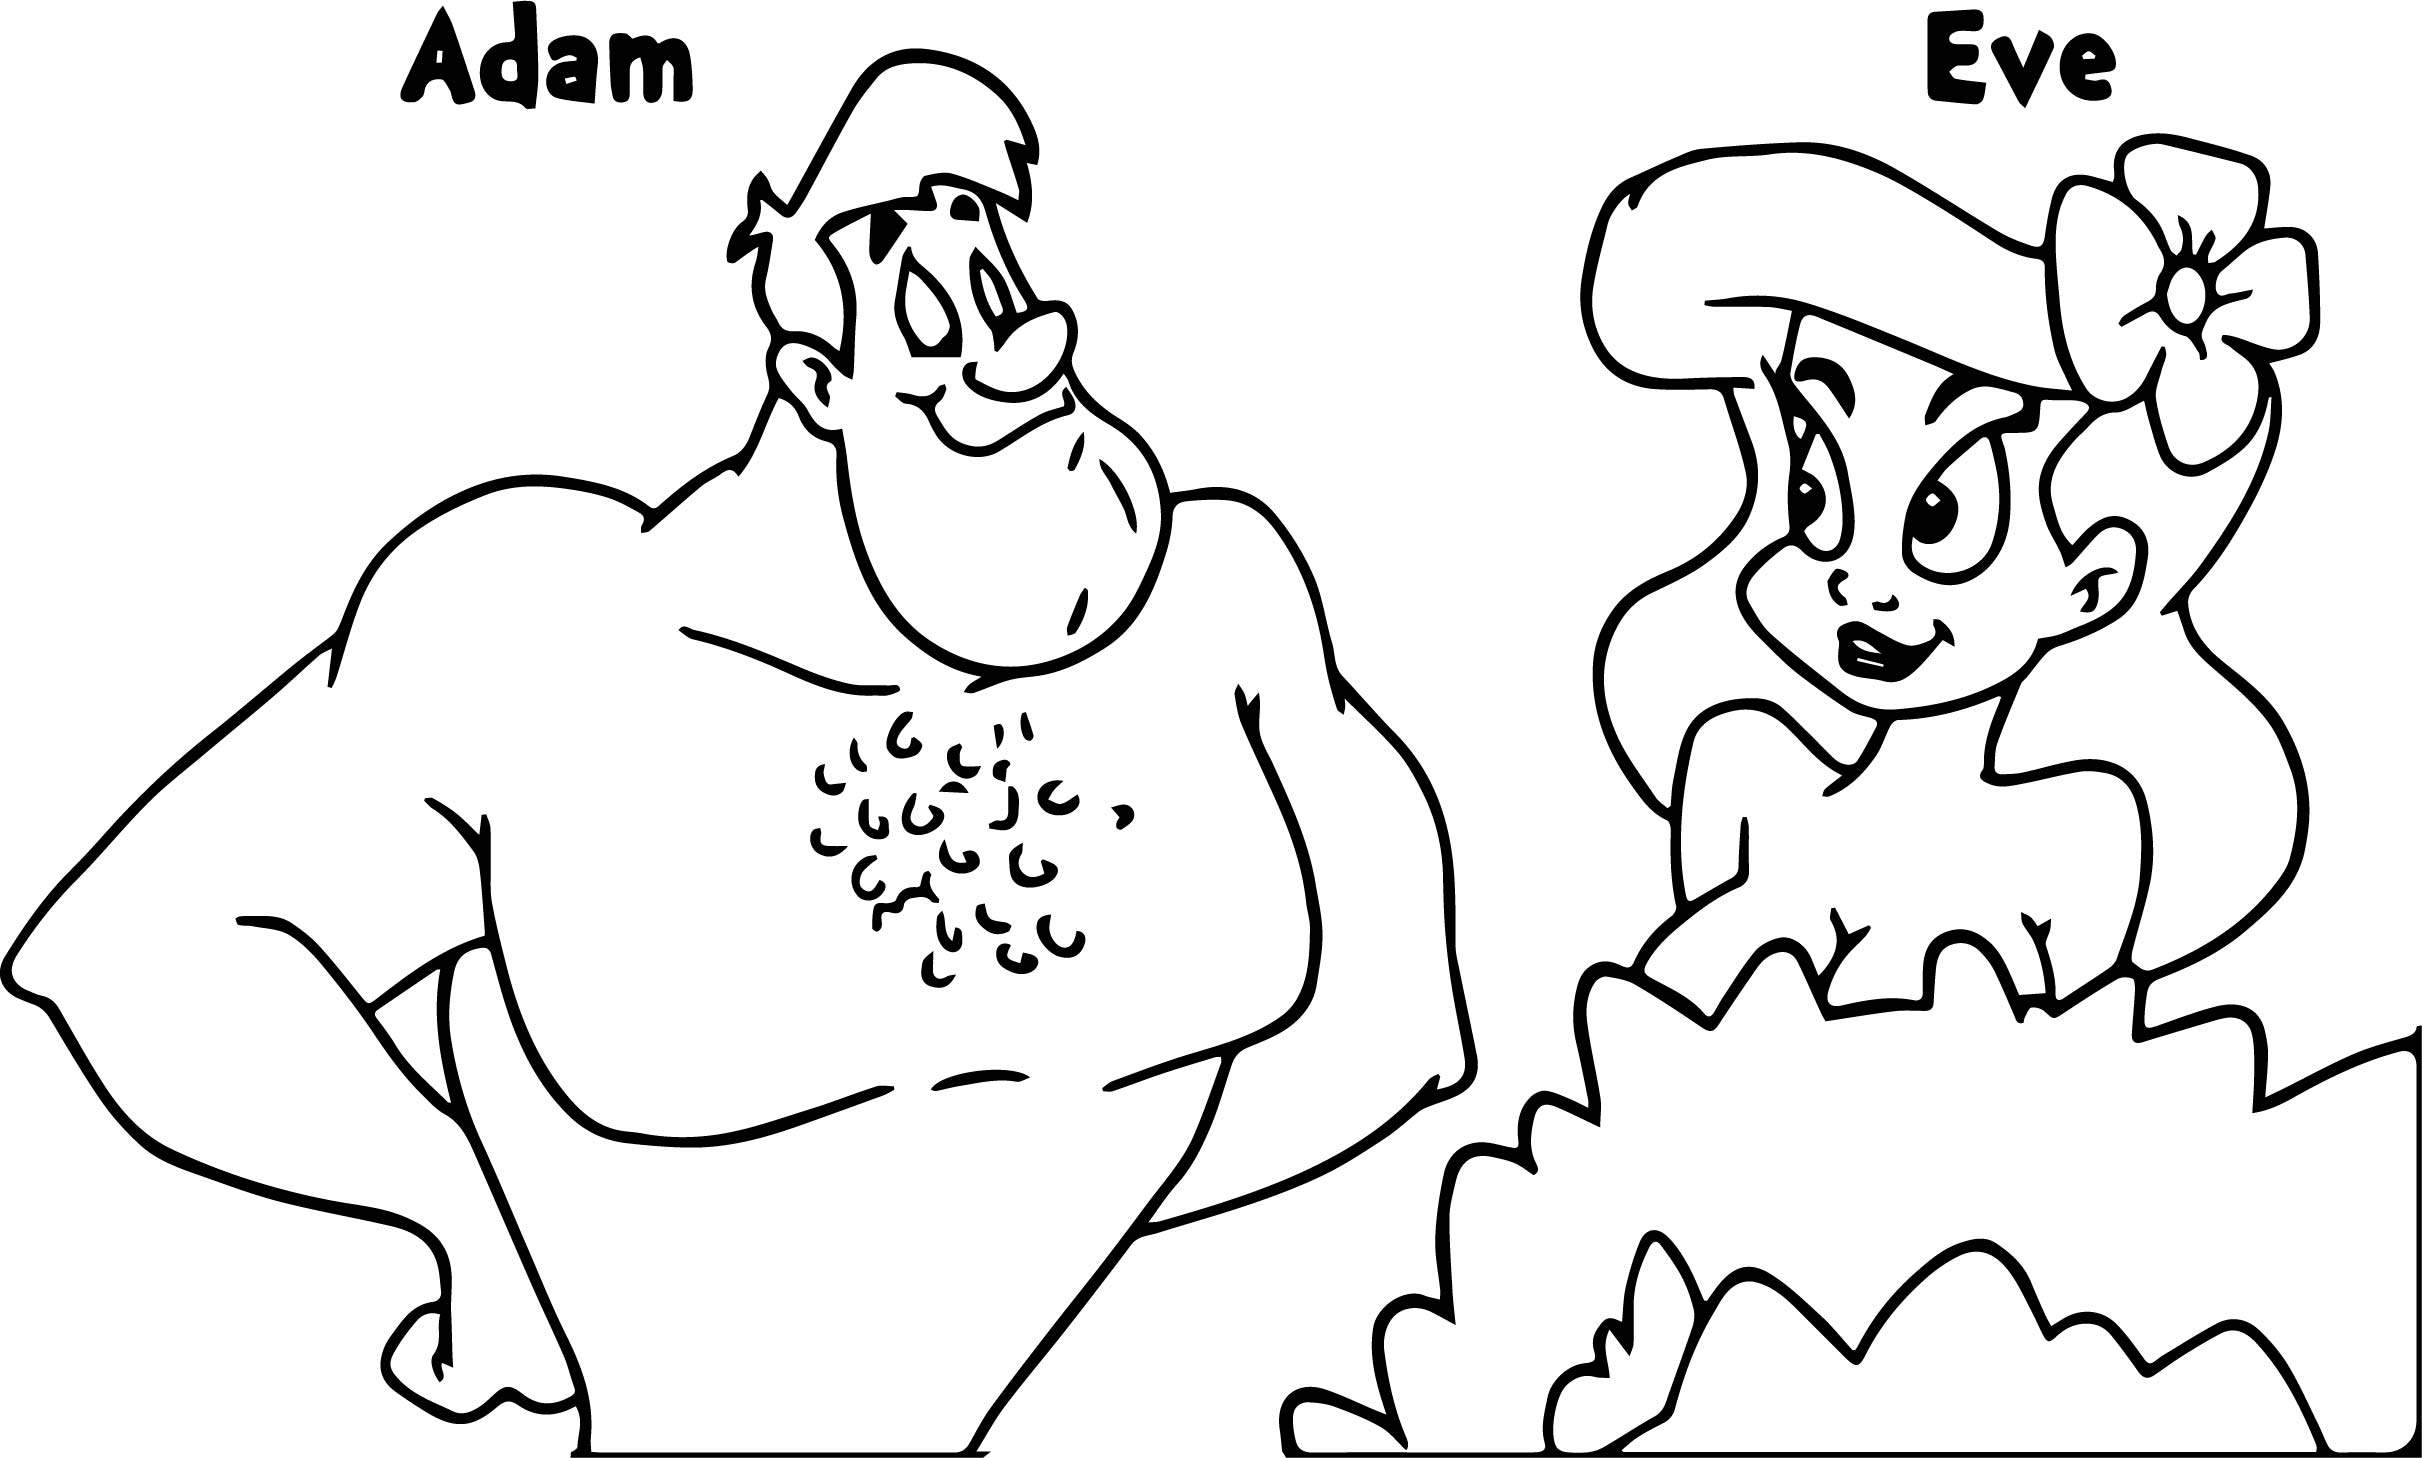 animaniacs adam and eve coloring page - Adam And Eve Coloring Page